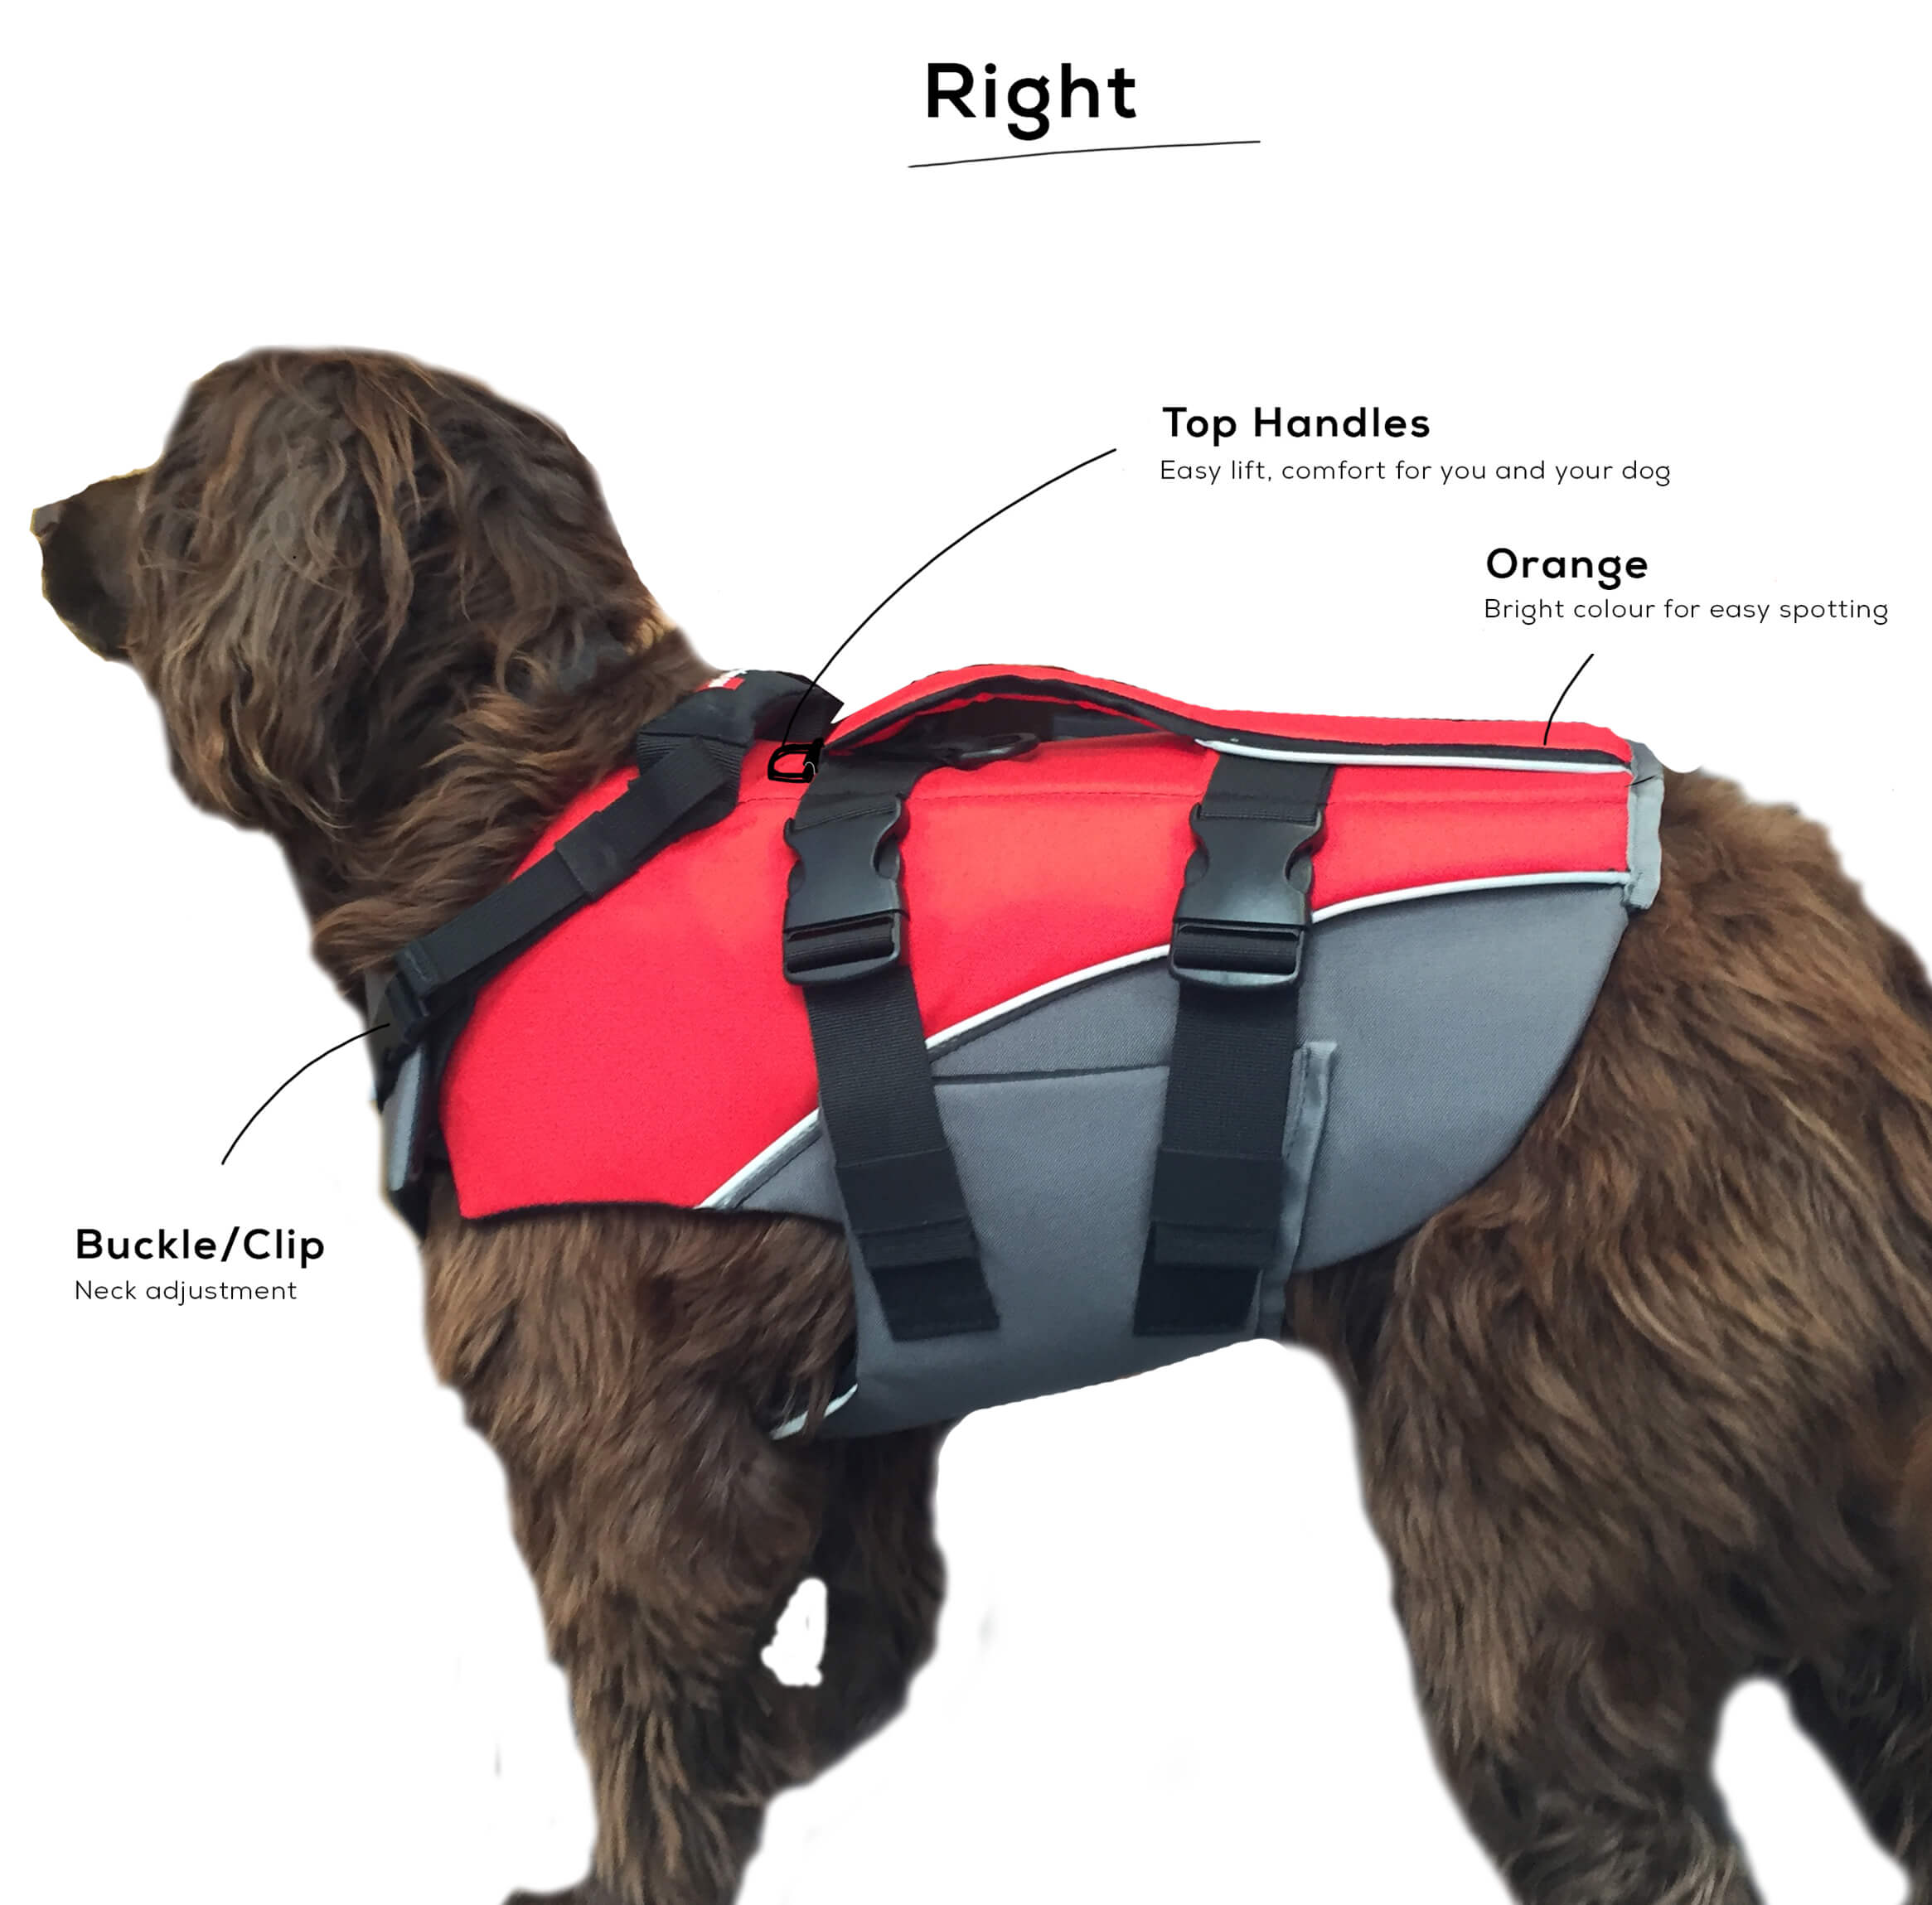 A Detailed Image Of The Red Original Dog Buoyancy Aid - Right